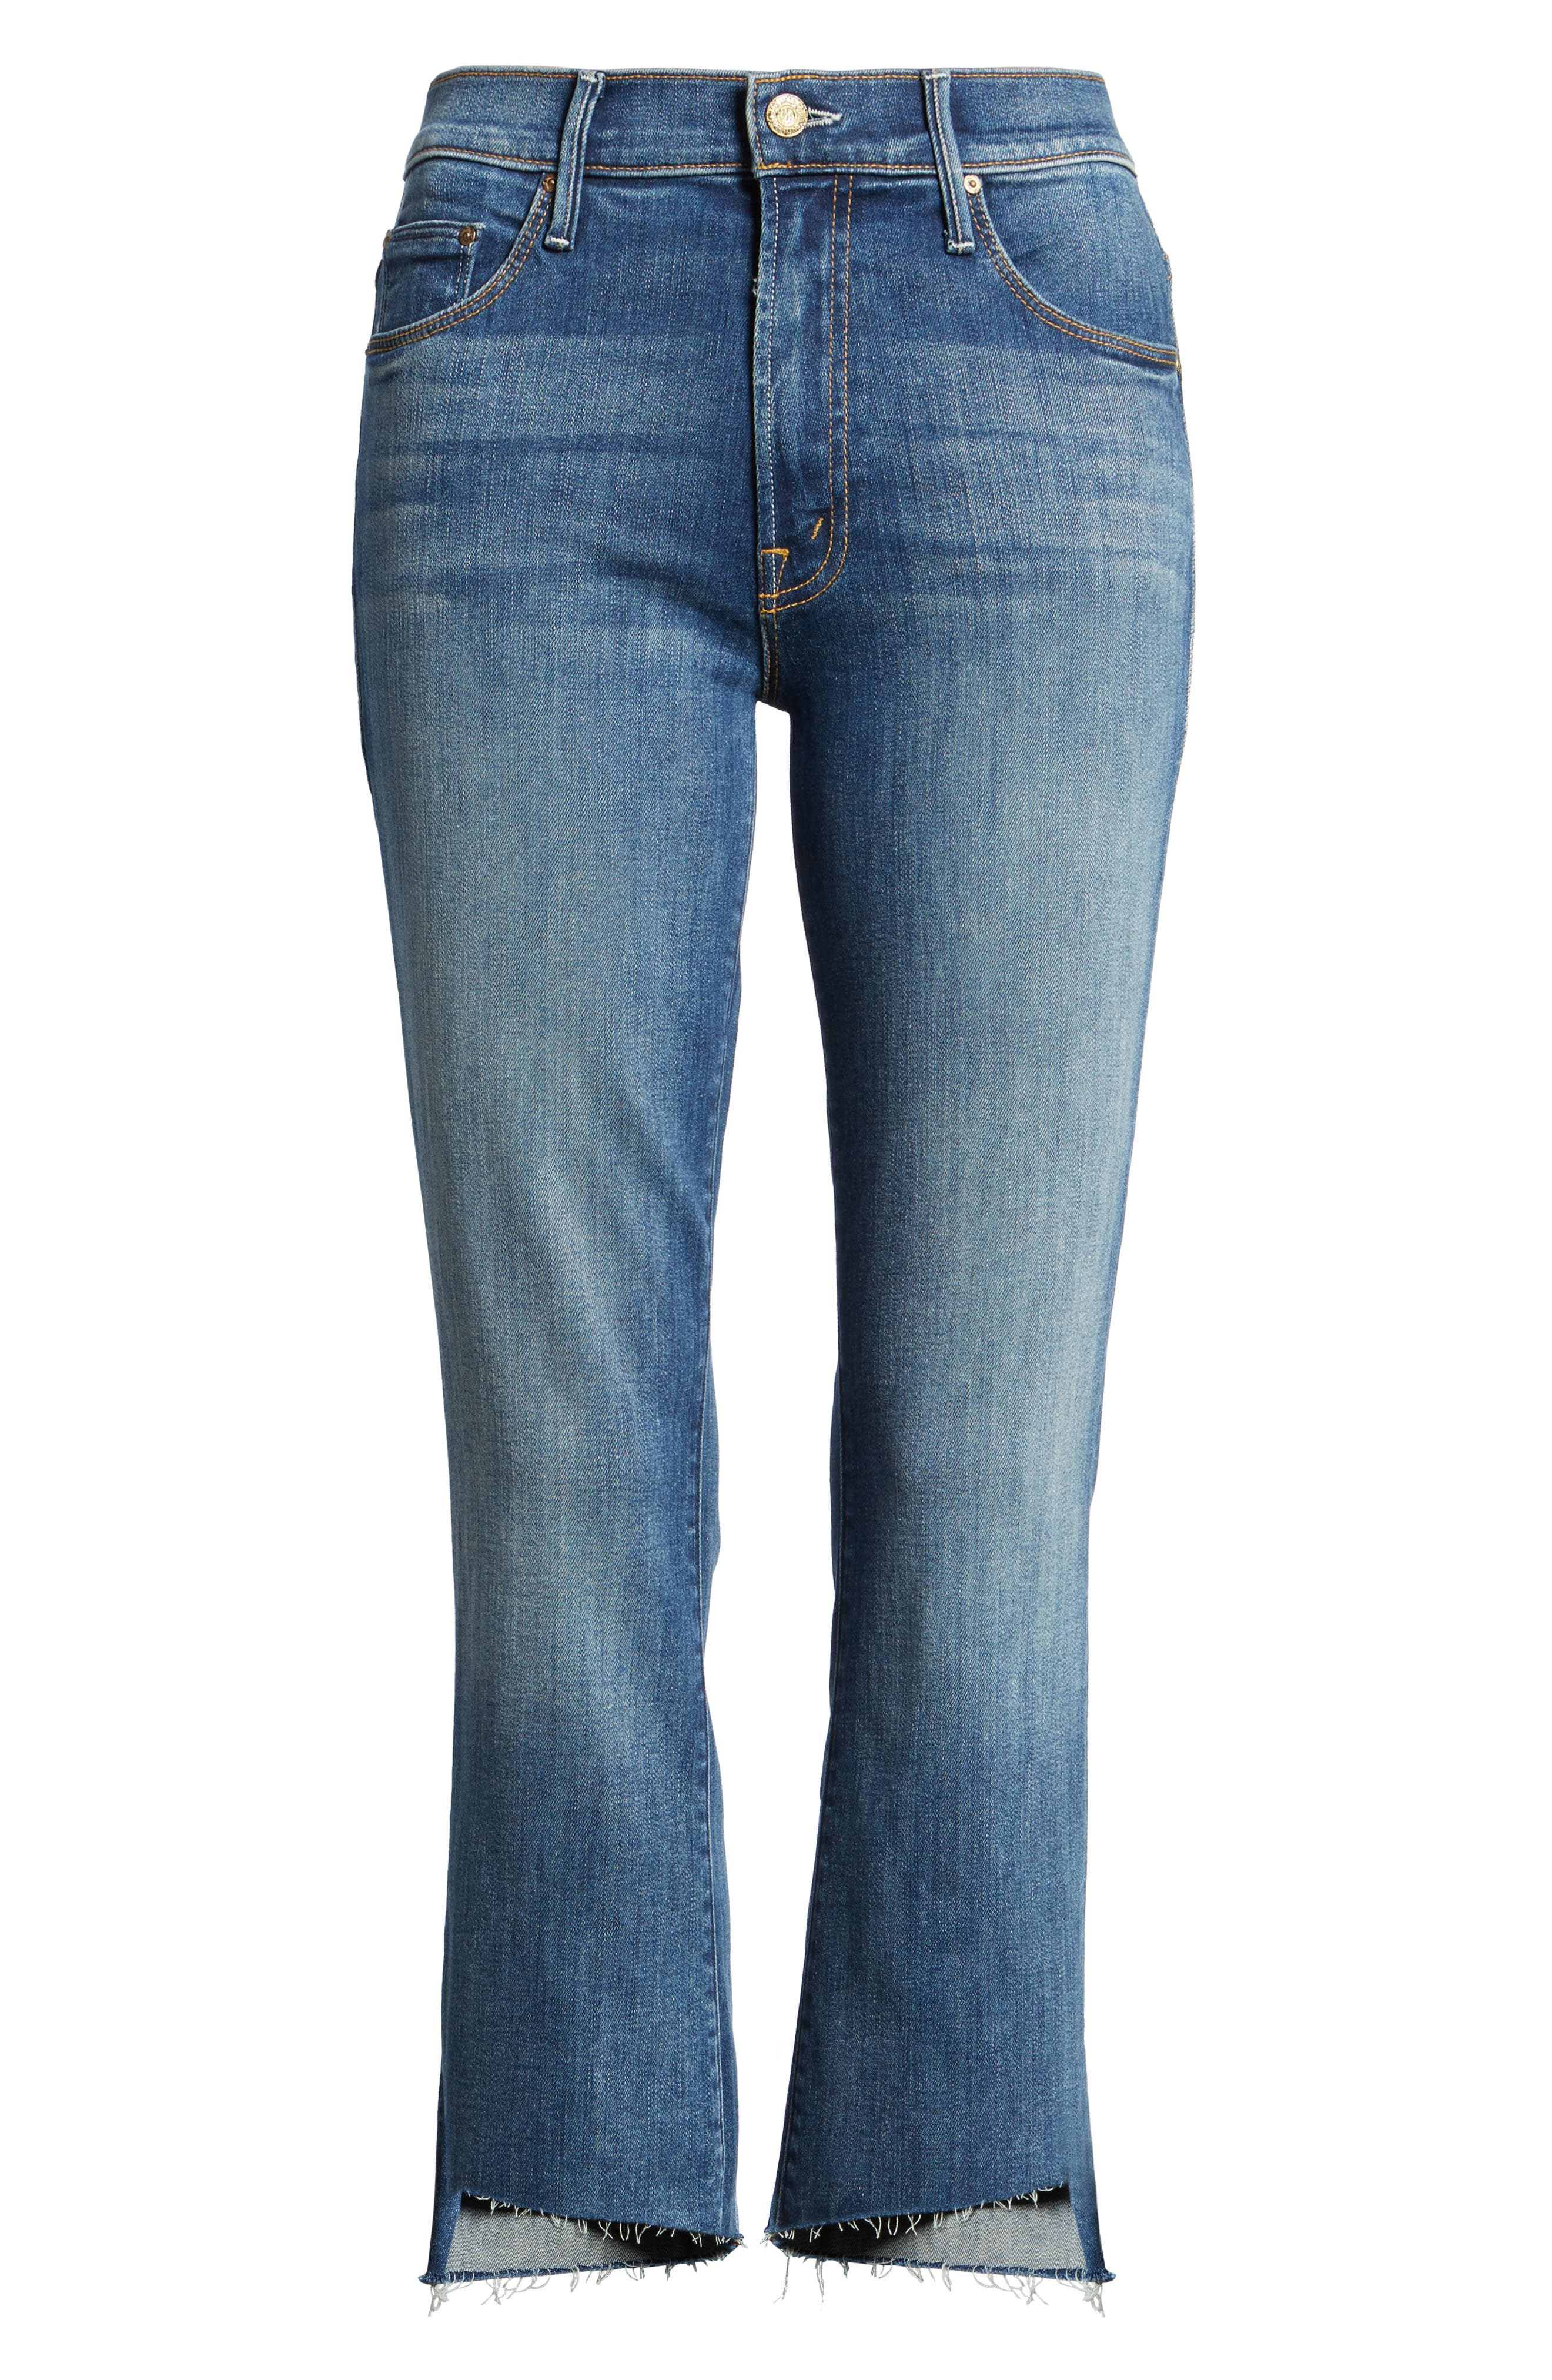 'The Insider' Crop Step Fray Jeans,                             Alternate thumbnail 2, color,                             420